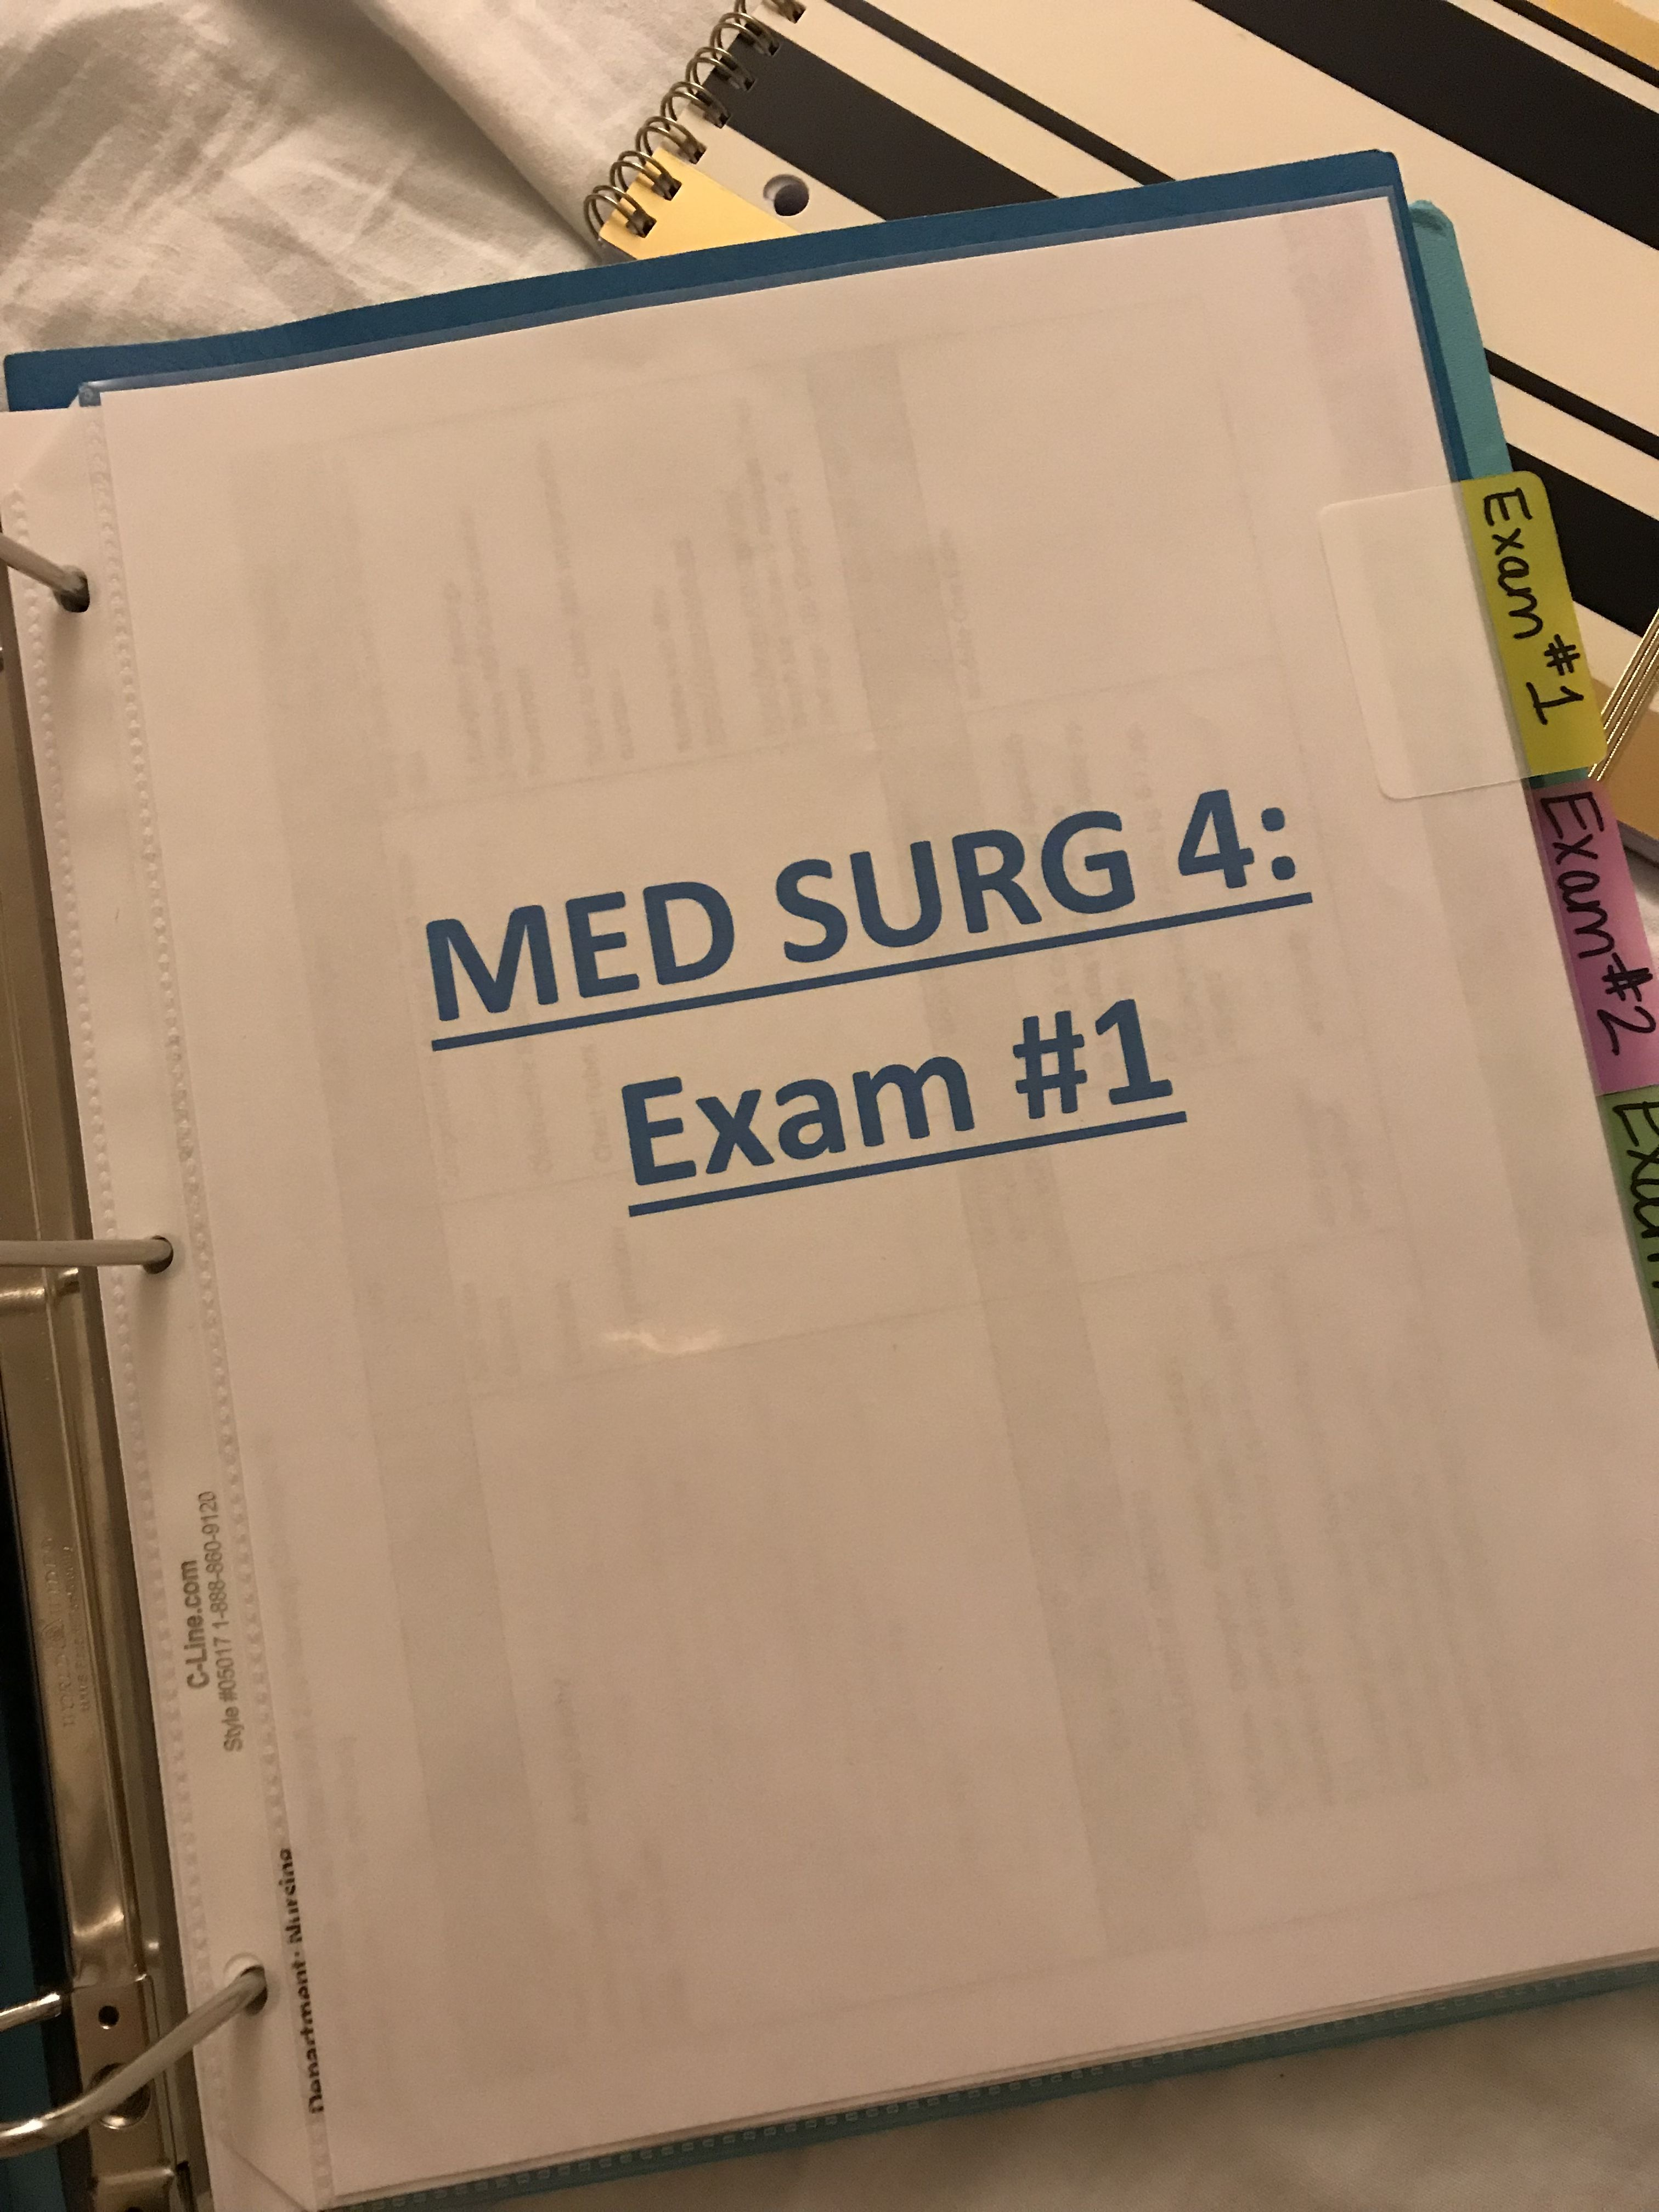 Pin by Amanda Faith on Med Surg 4 (DTCC) | Paper shopping